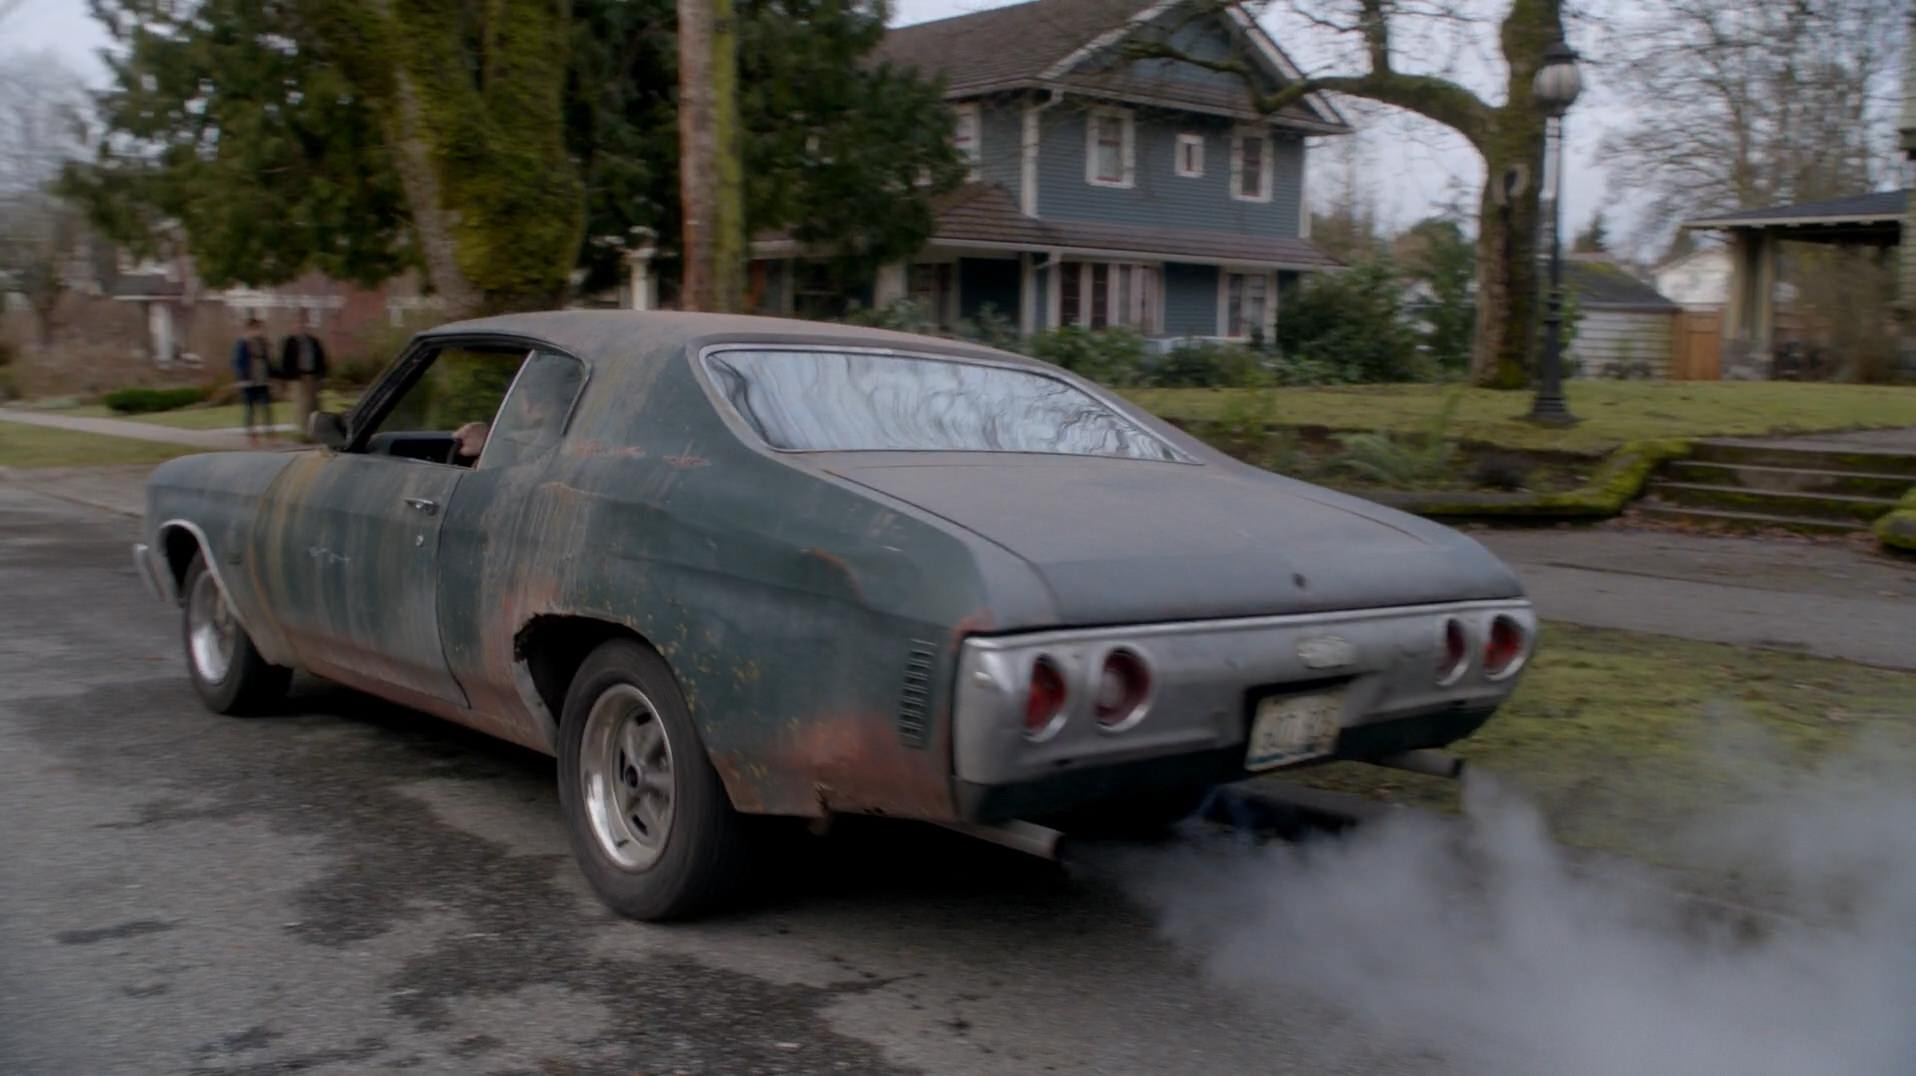 The Winchester Family Business Memorable Moments Supernatural - Supernatural show car